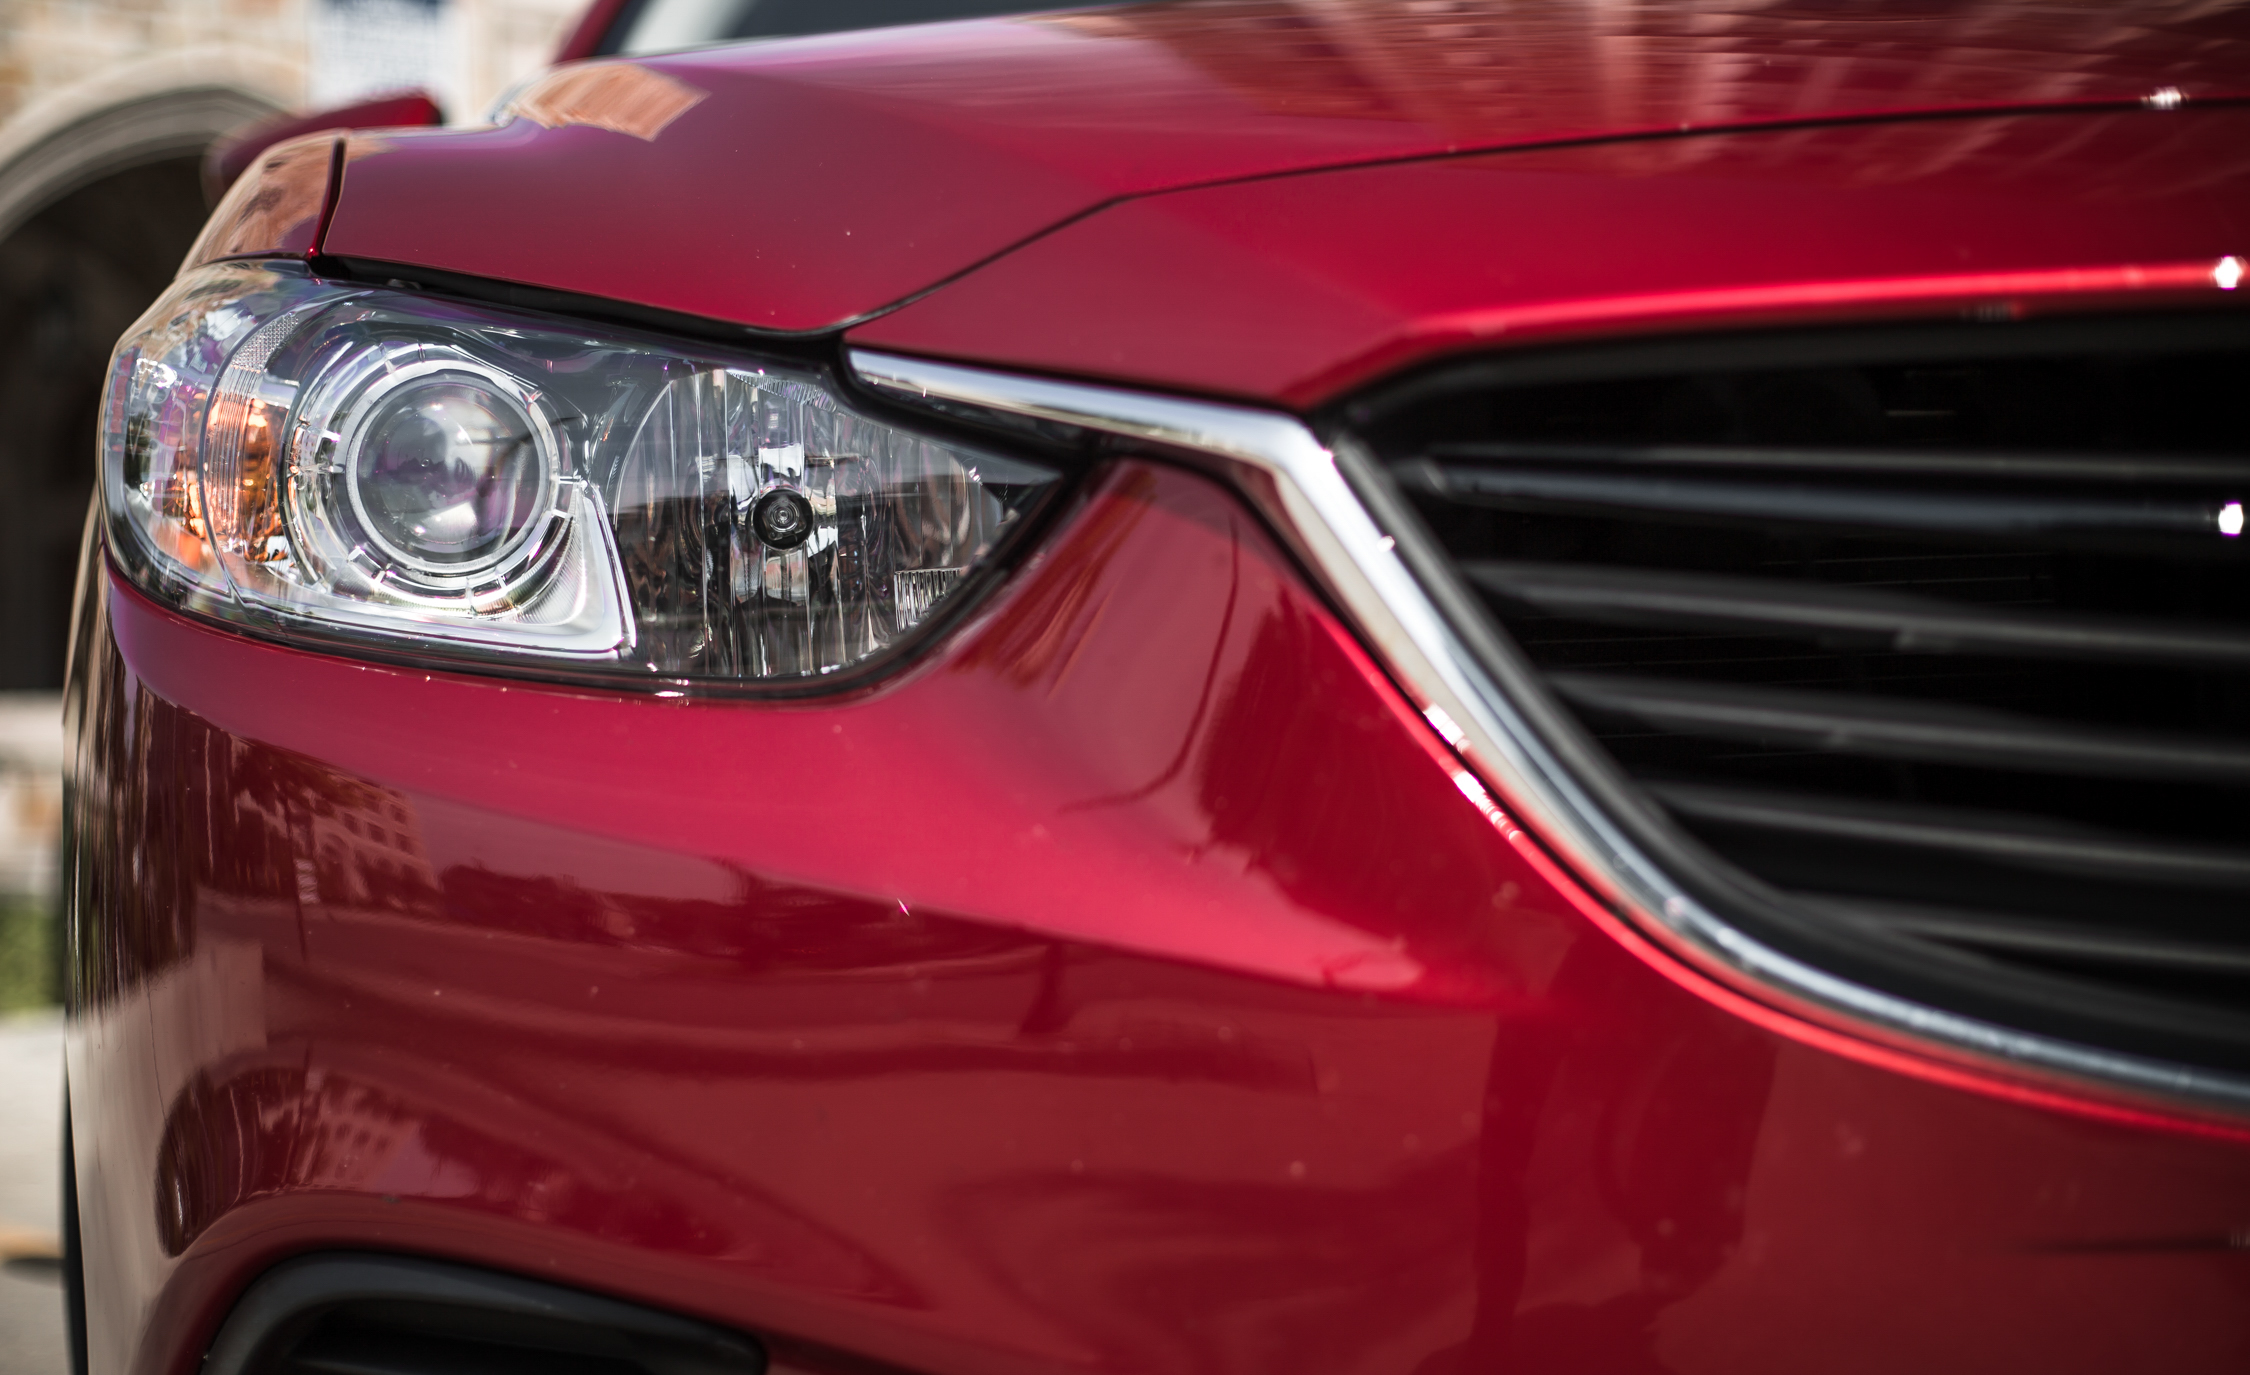 2016 Mazda 6 Touring Exterior Left Headlamp